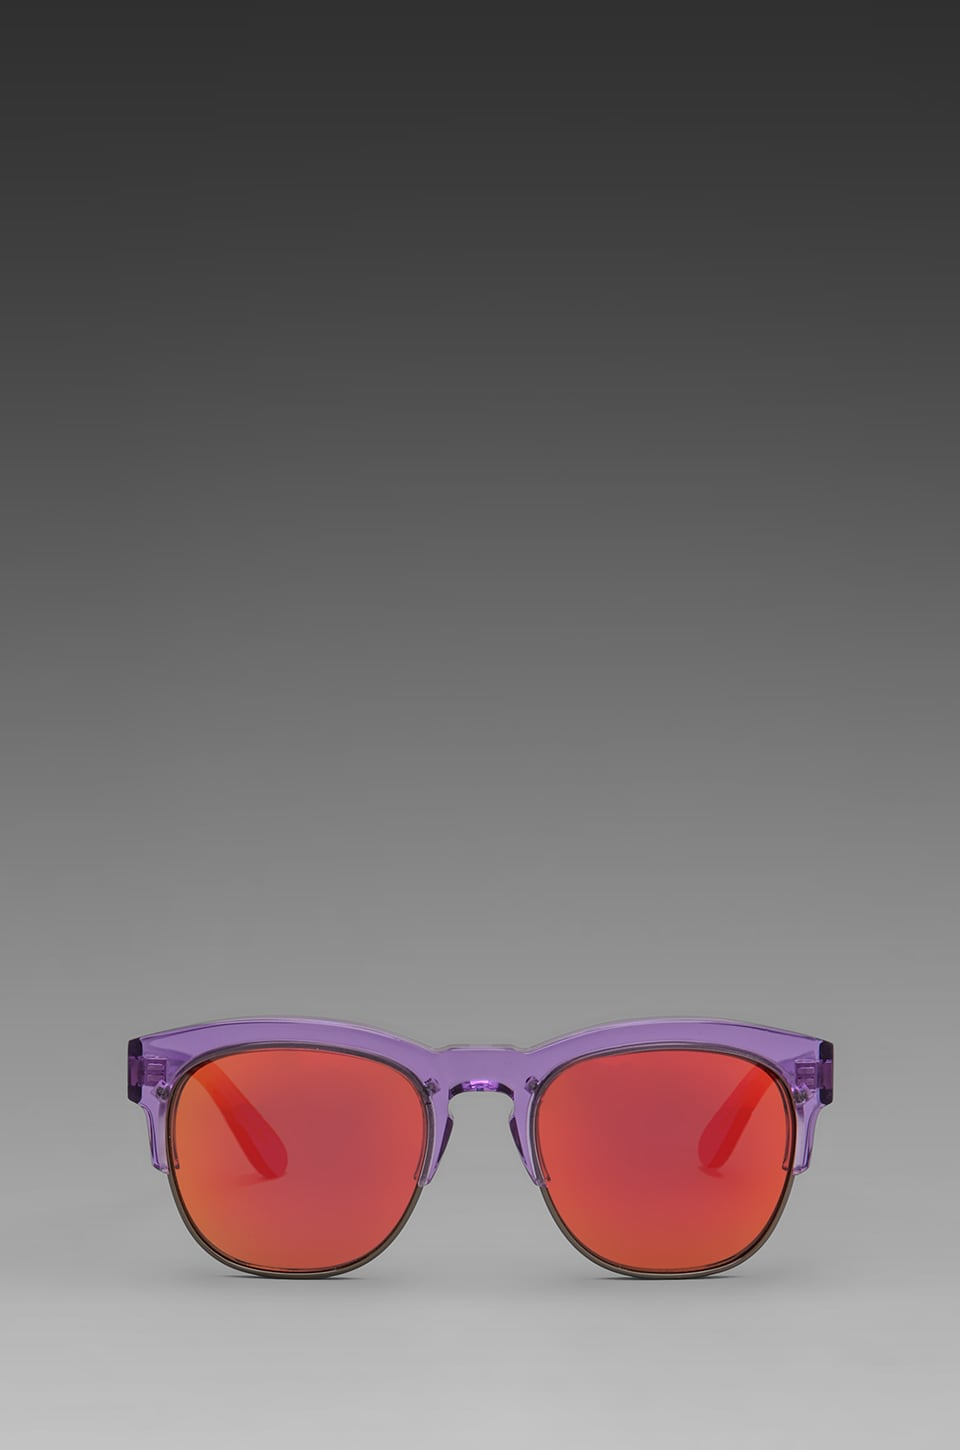 Wildfox Couture Club Fox Wayfare Sunglasses in Translucent Purple